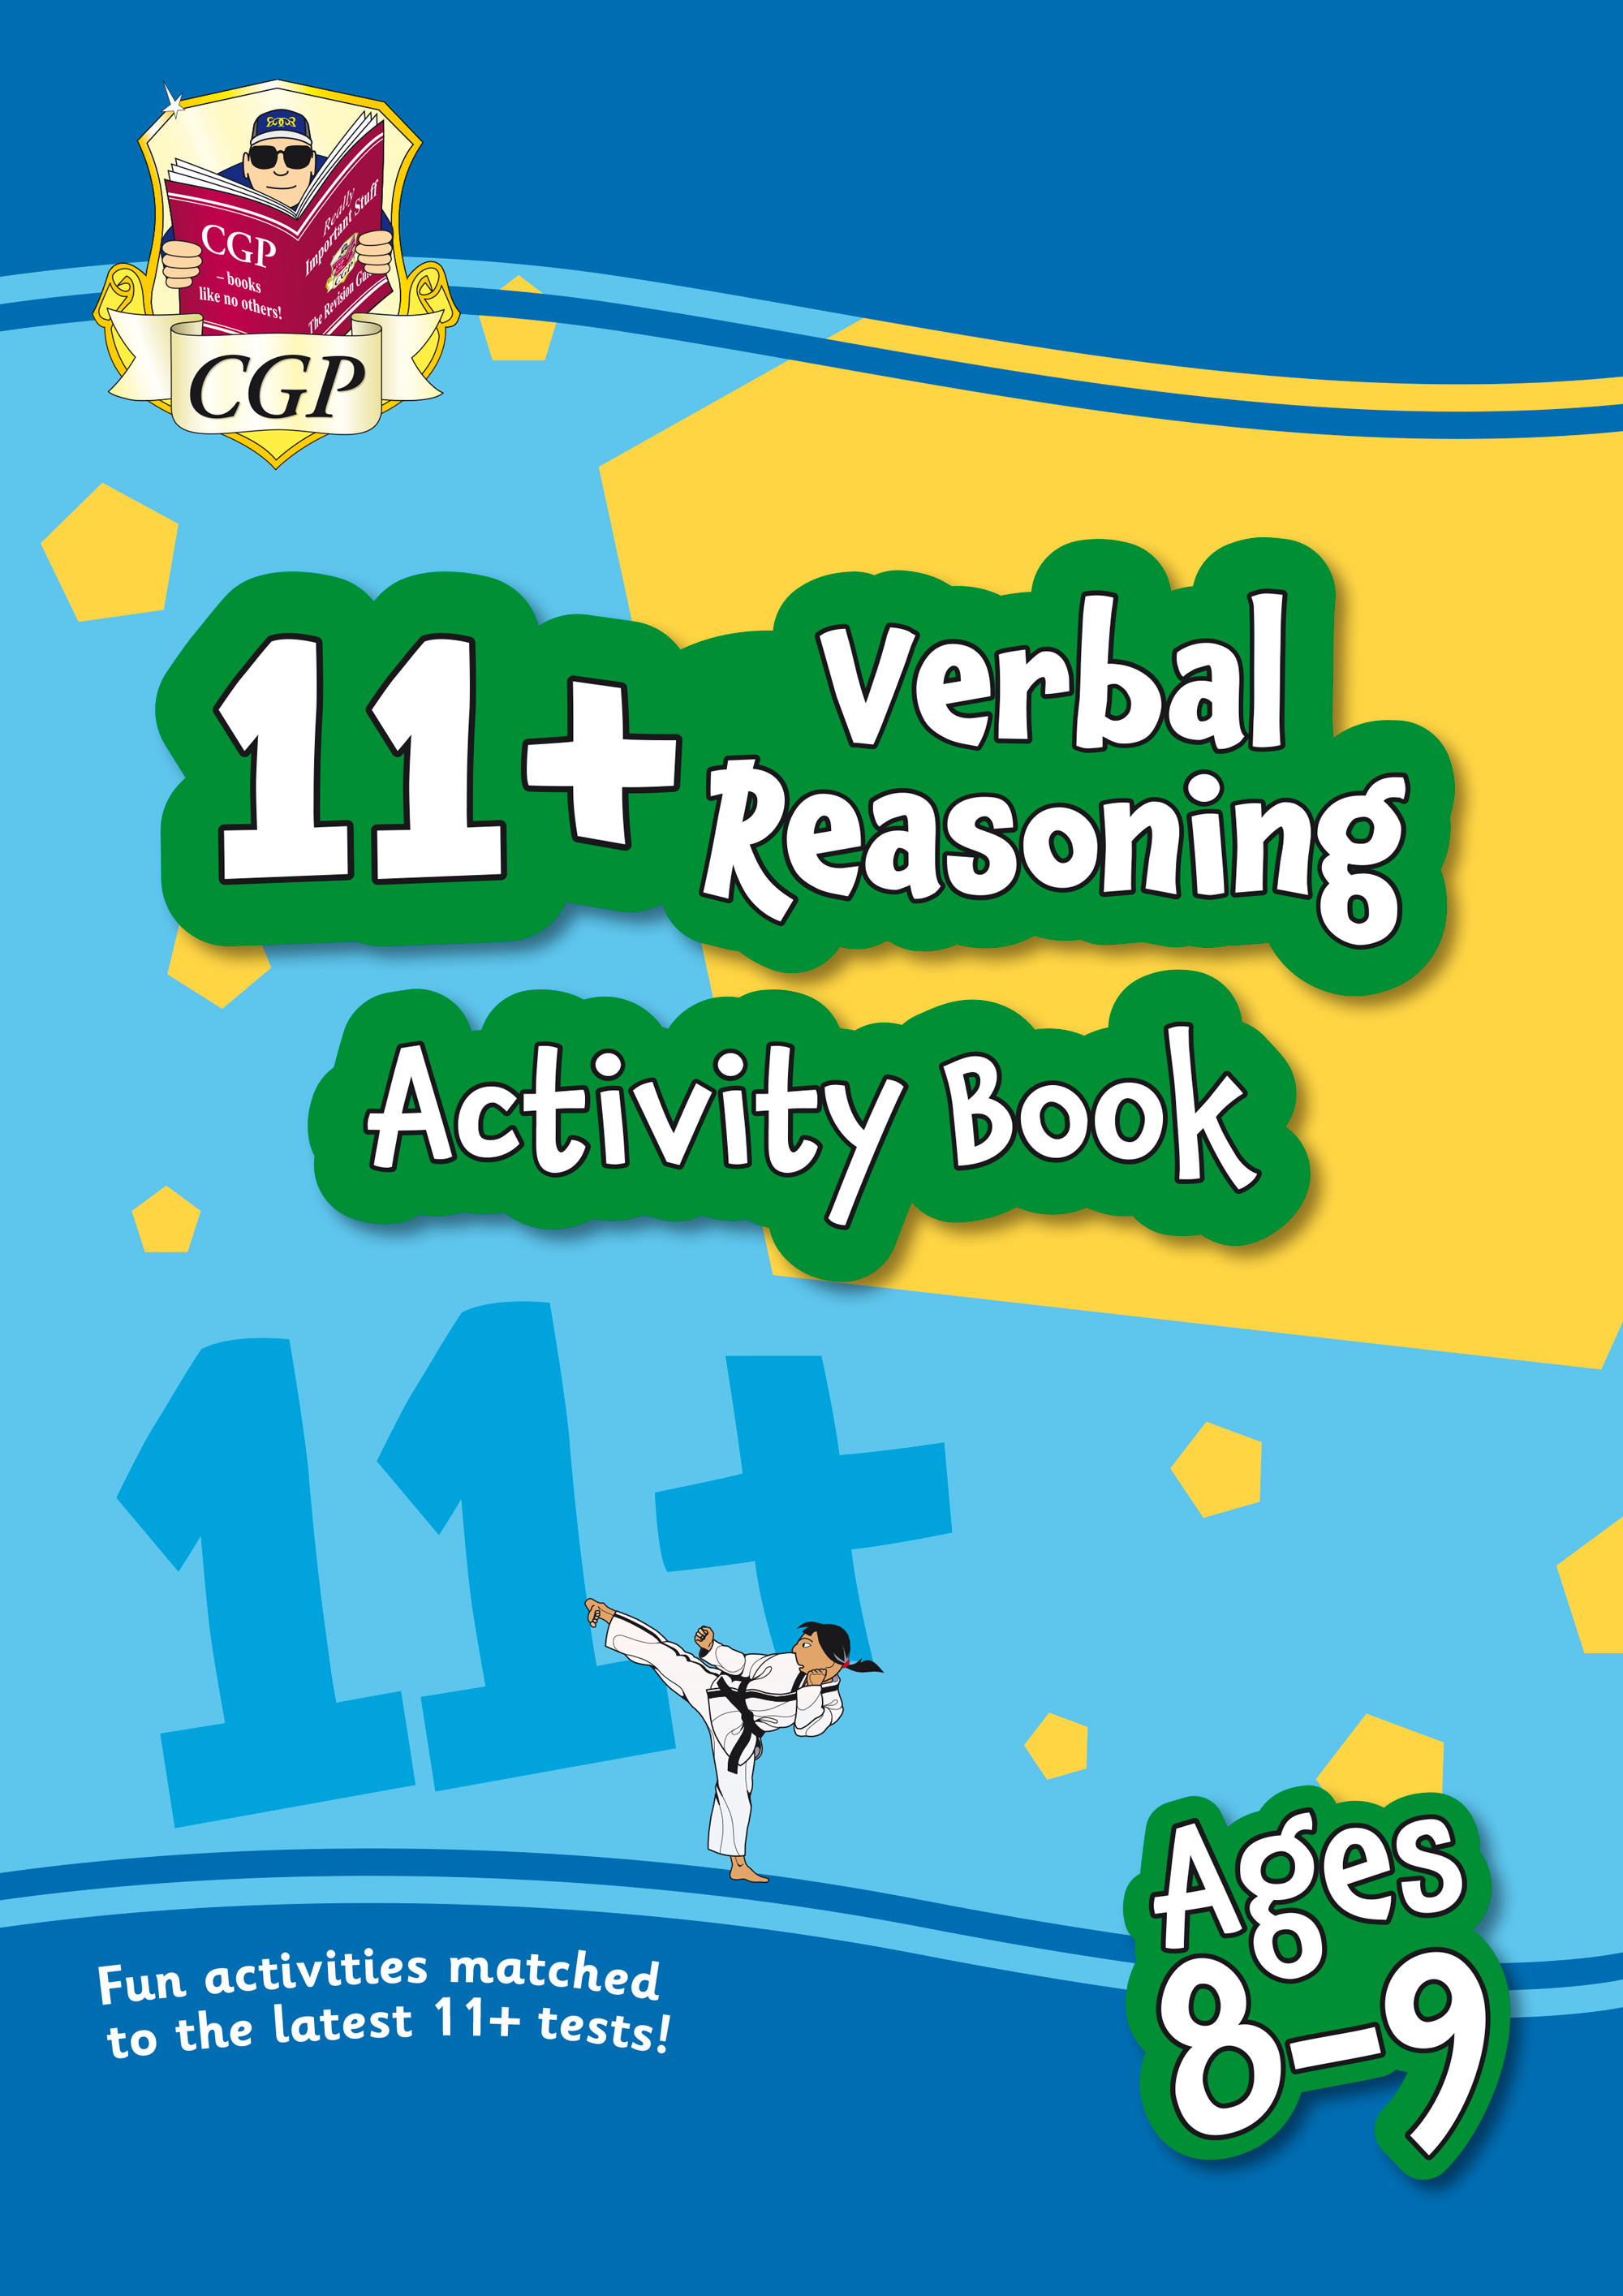 VF4QE1 - New 11+ Activity Book: Verbal Reasoning - Ages 8-9